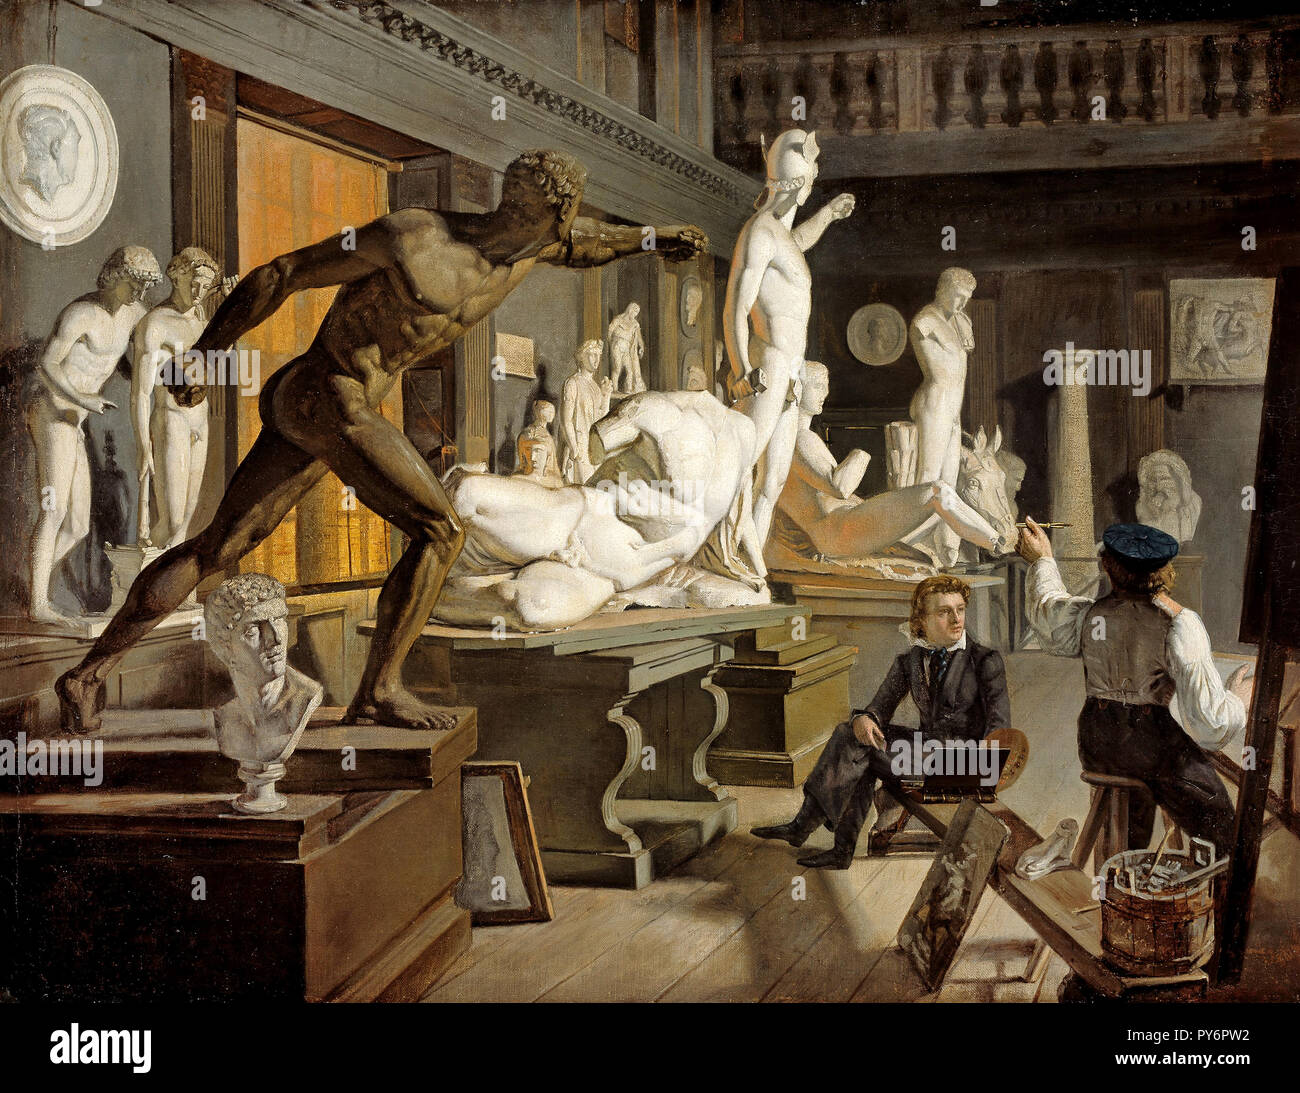 Knud Baade, Scene from the Academy in Copenhagen, Circa 1827-1828 Oil on canvas, National Gallery of Norway, Oslo, Norway. - Stock Image